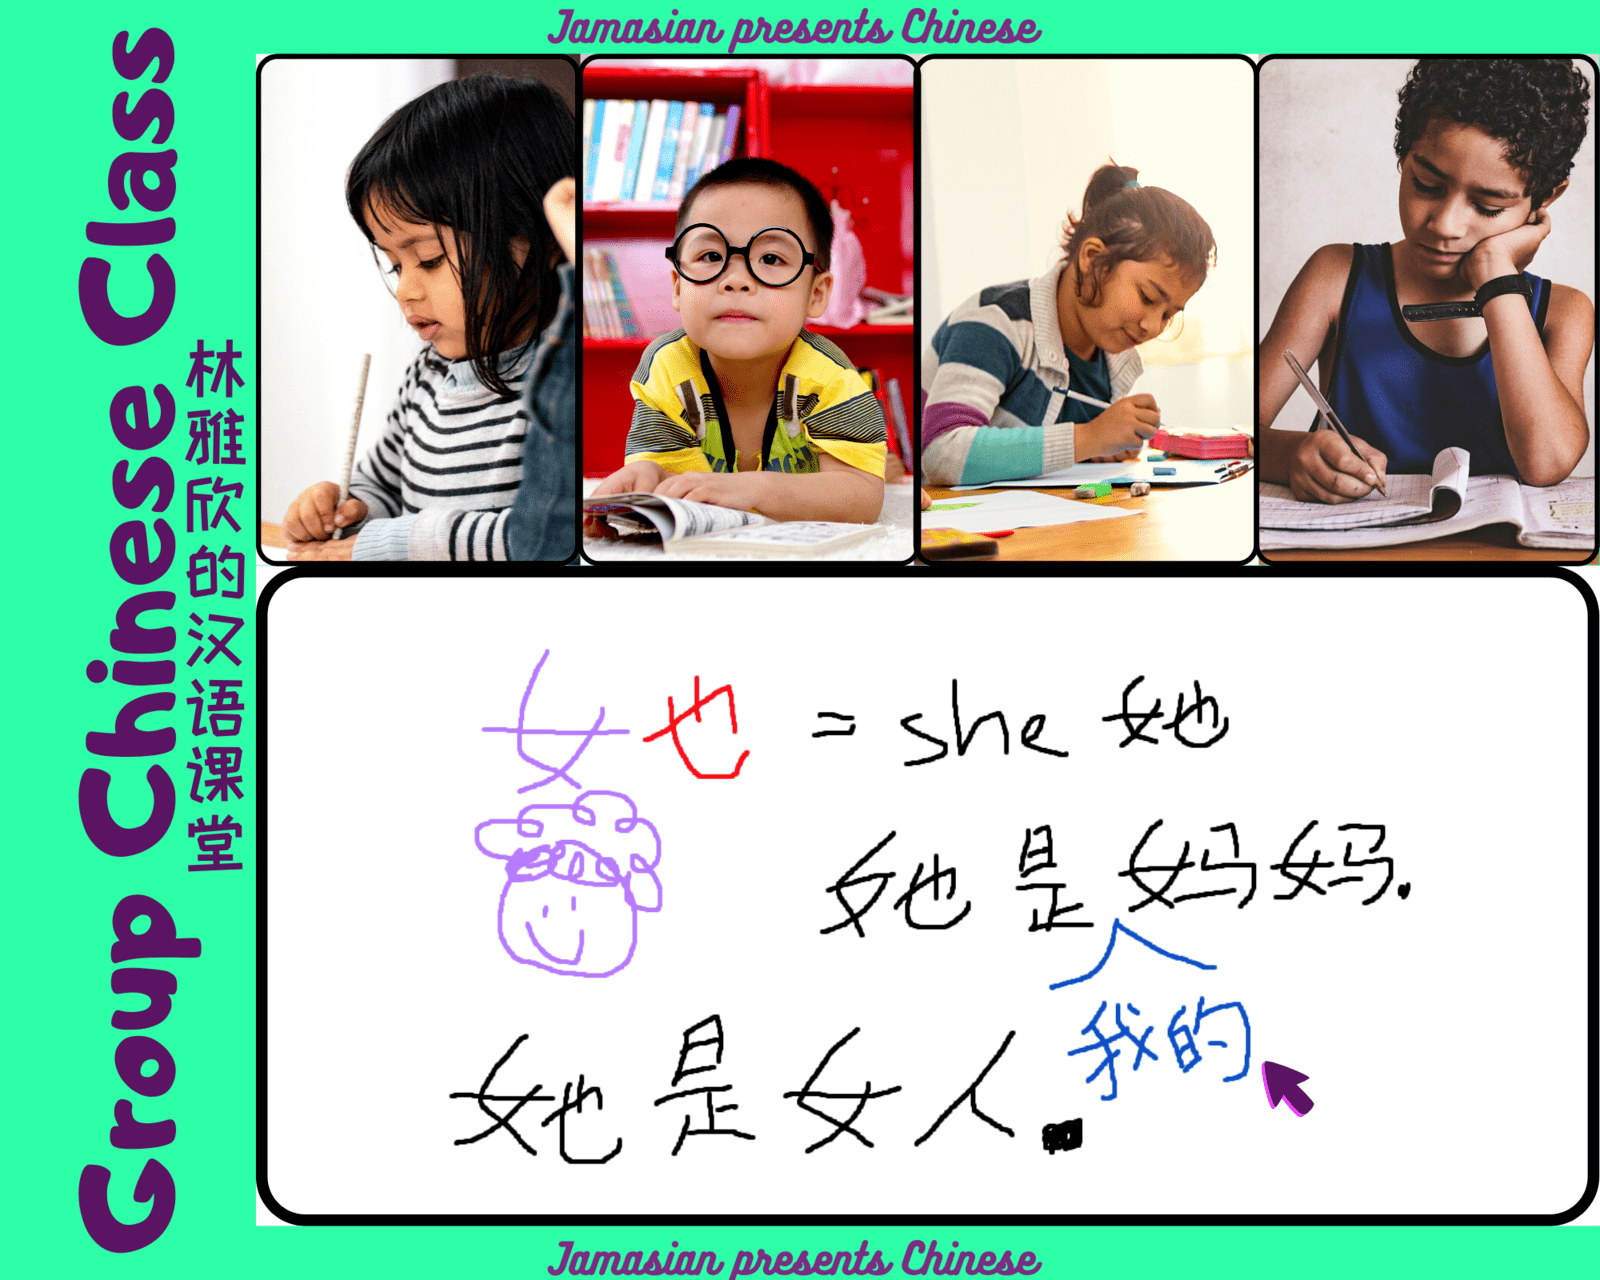 Four children used for ad of real virtual Chinese class for children shown by bottom whiteboard.